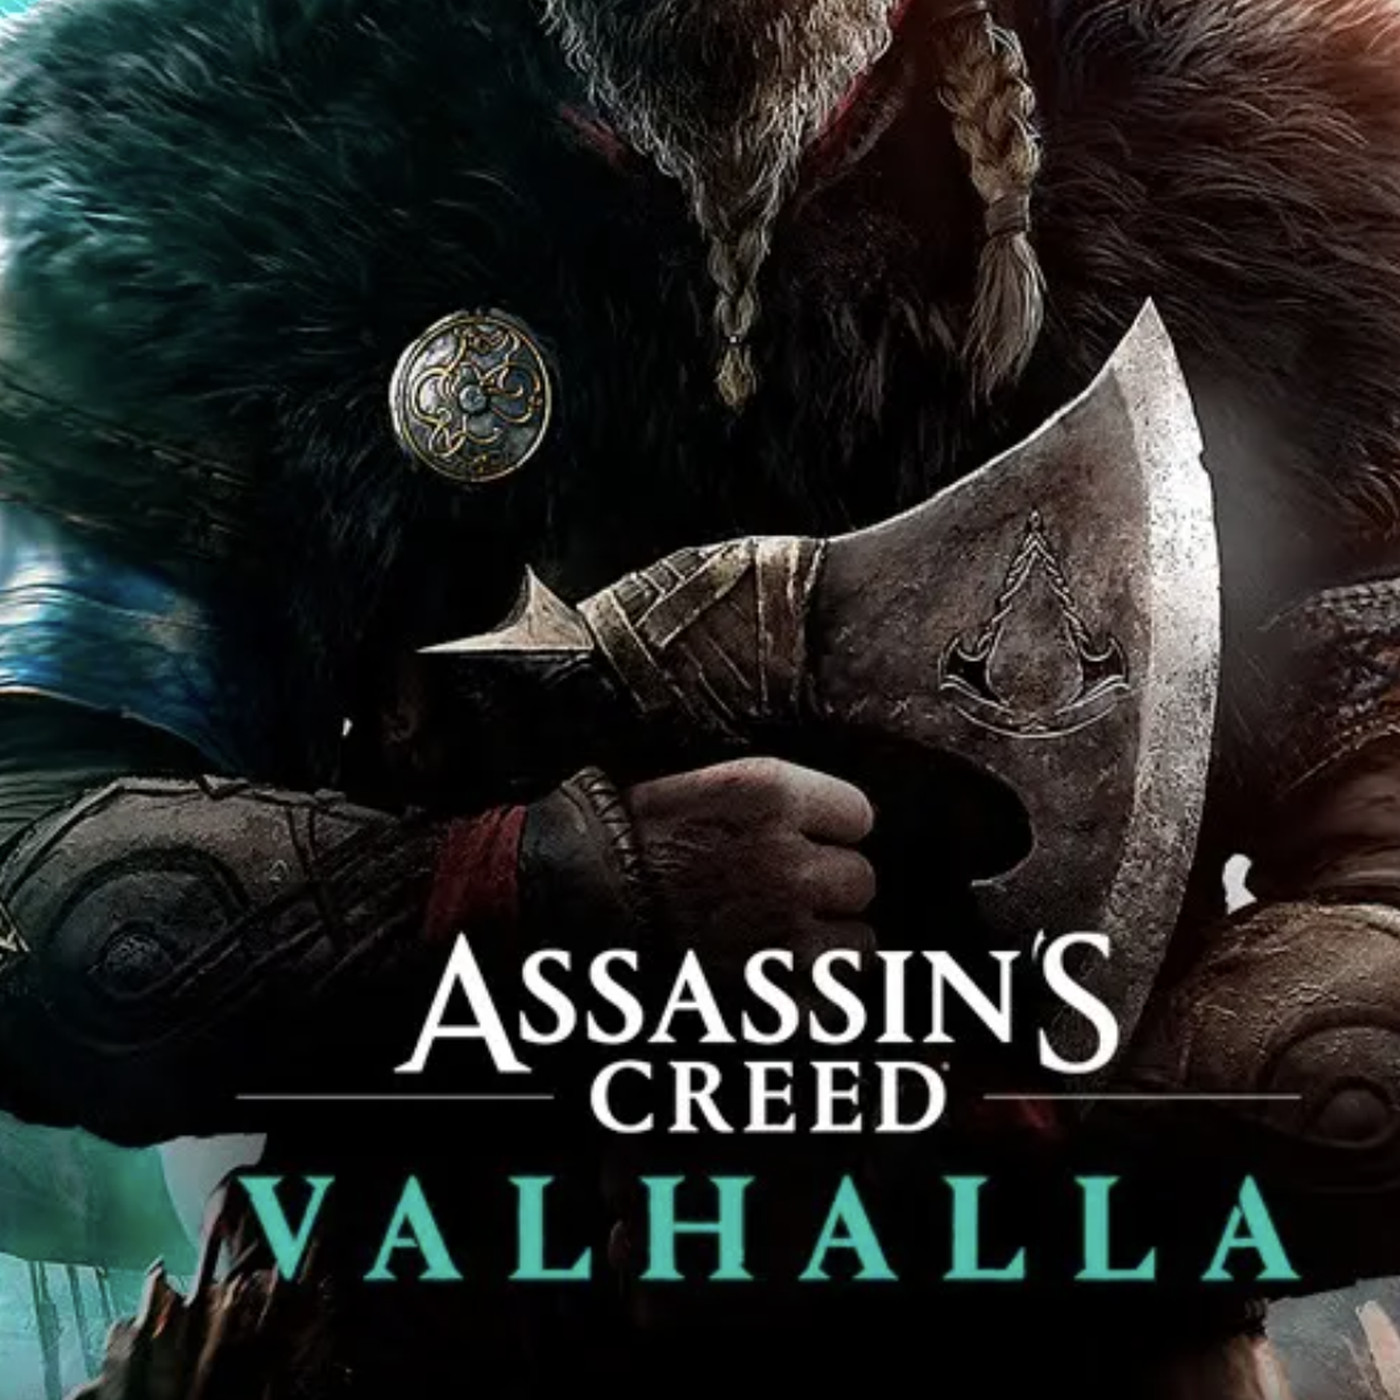 Assassin's Creed Valhalla is Assassin's Creed with vikings - The Verge